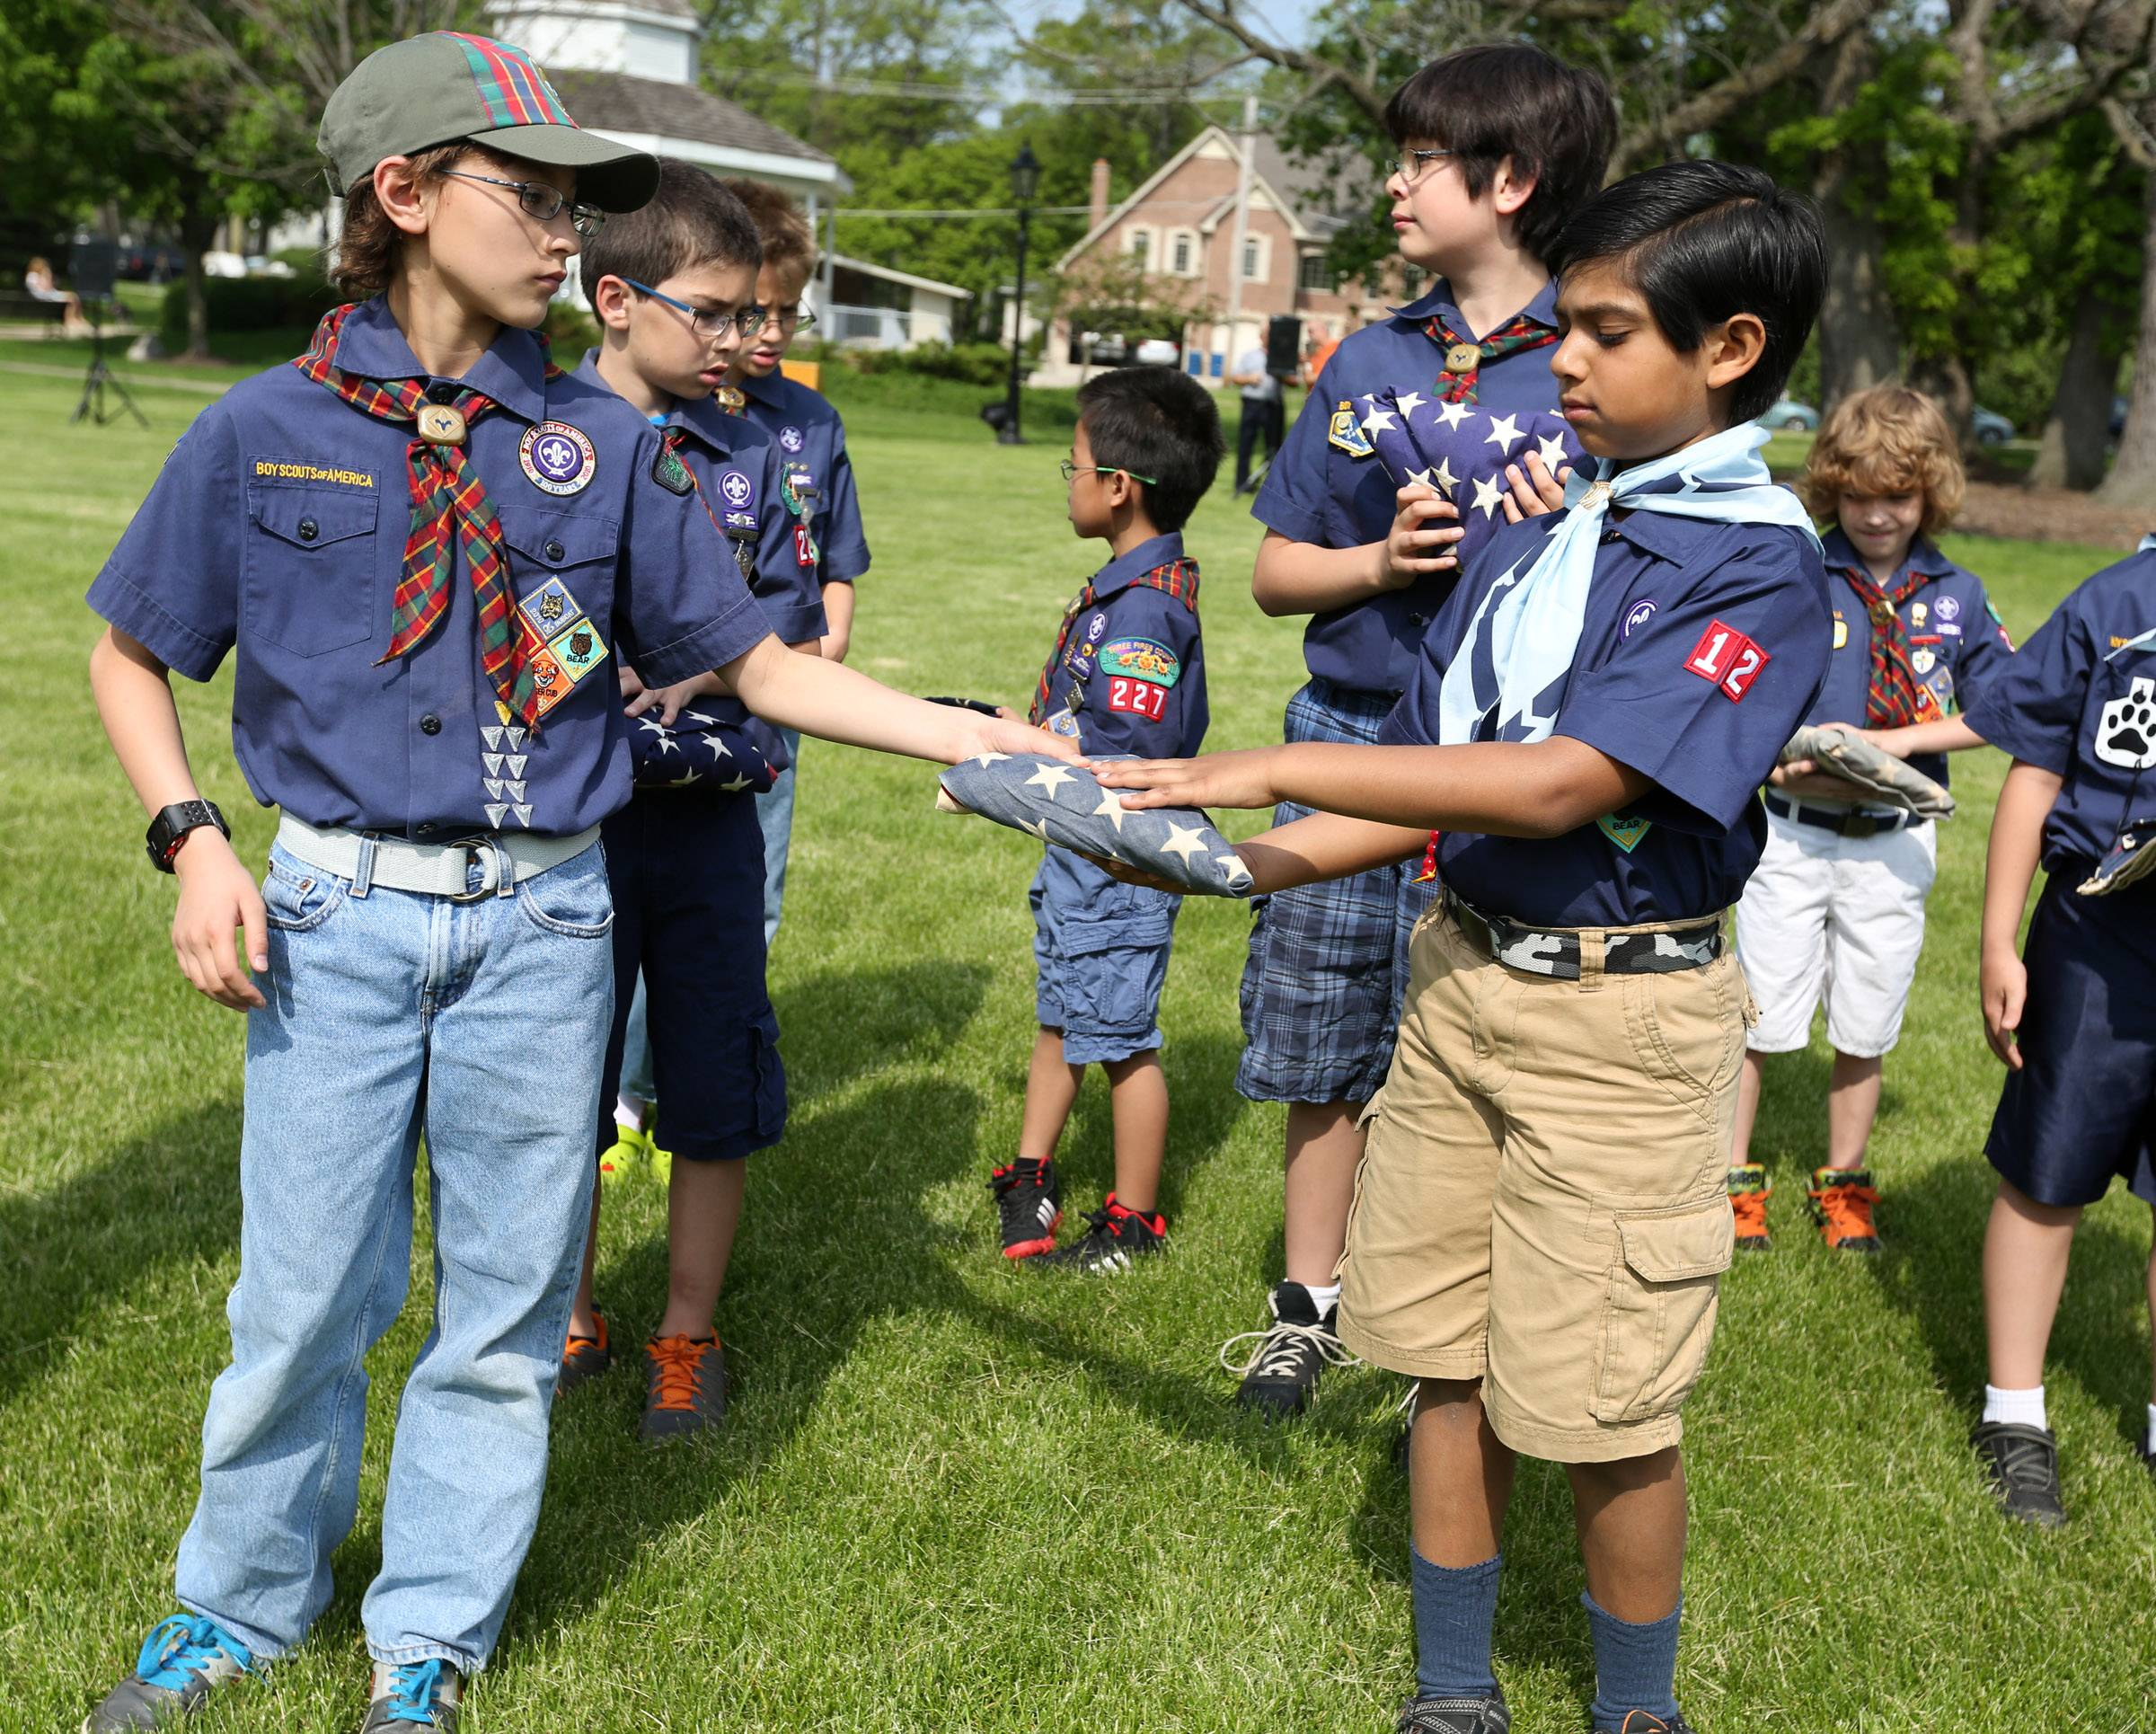 Boy Scout Ryan Conwell hands a folded worn American flag to Rahil Patel, both with Pack 12, to start a flag retirement ceremony held by Bartlett VFW Post 11018 and American Legion Post 1212 at Bartlett Park on Memorial Day.